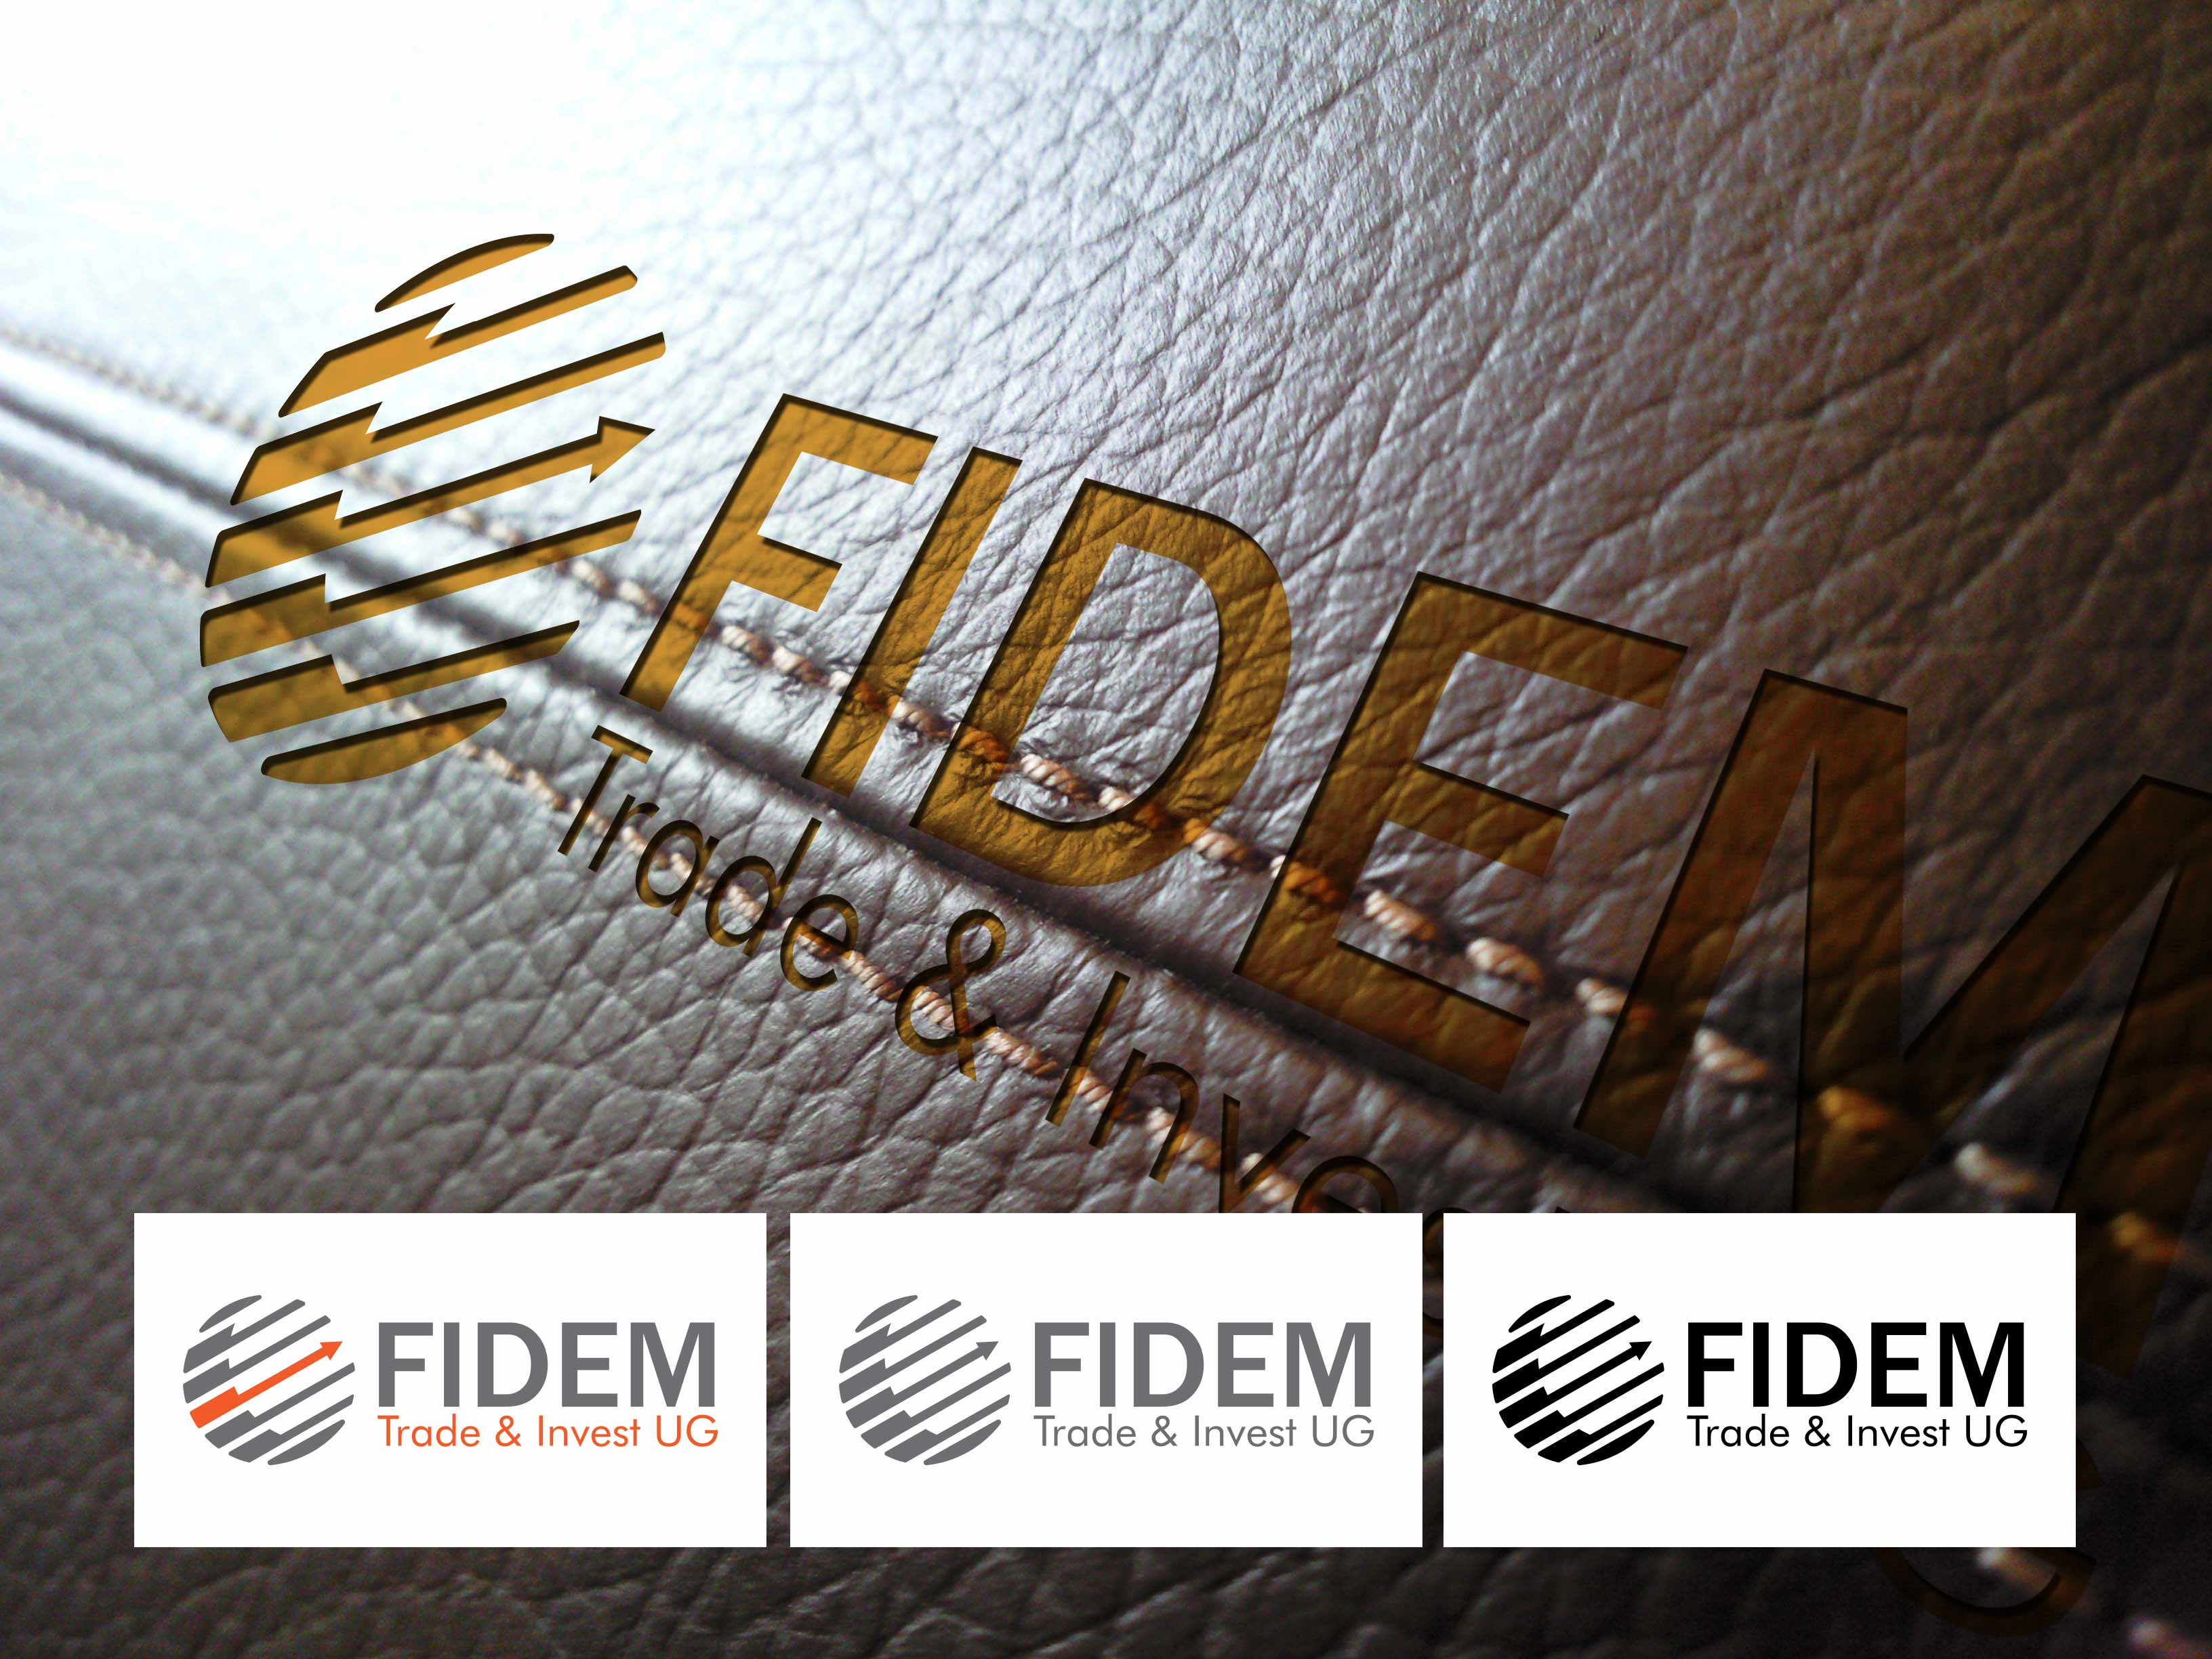 Logo Design by lagalag - Entry No. 320 in the Logo Design Contest Professional Logo Design for FIDEM Trade & Invest UG.